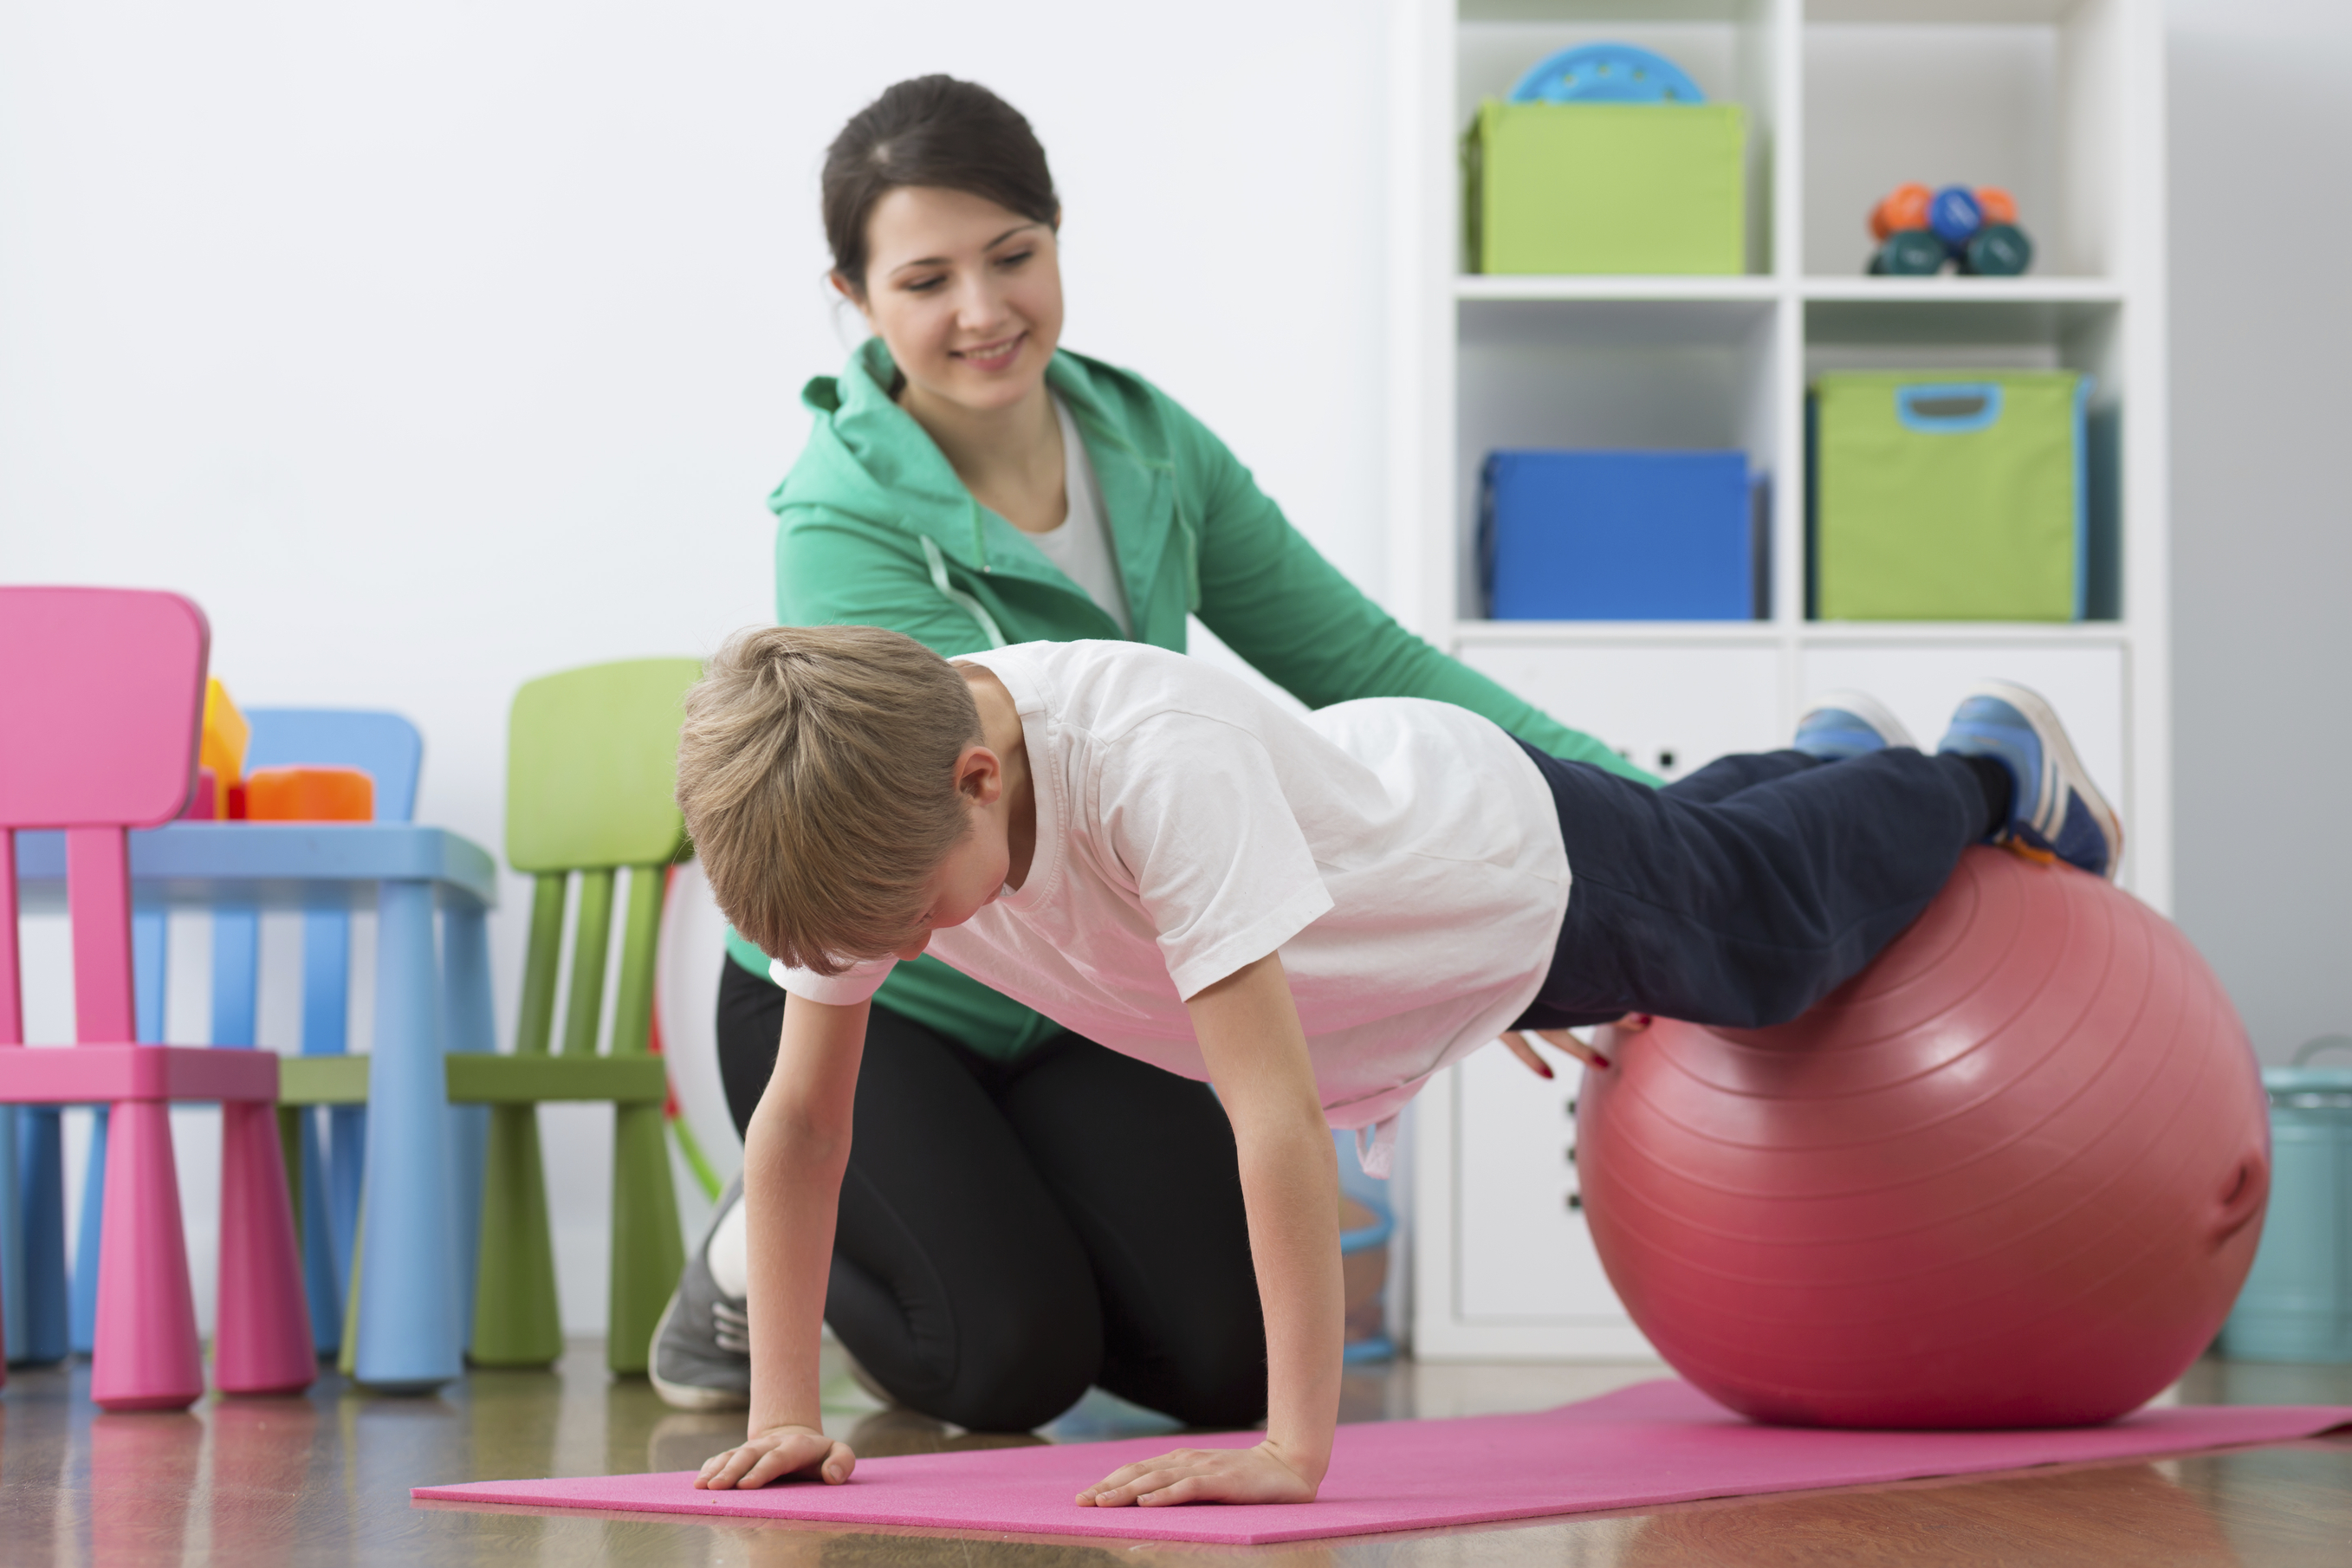 4 Things To Know About Pediatric Physical Therapylittle Steps